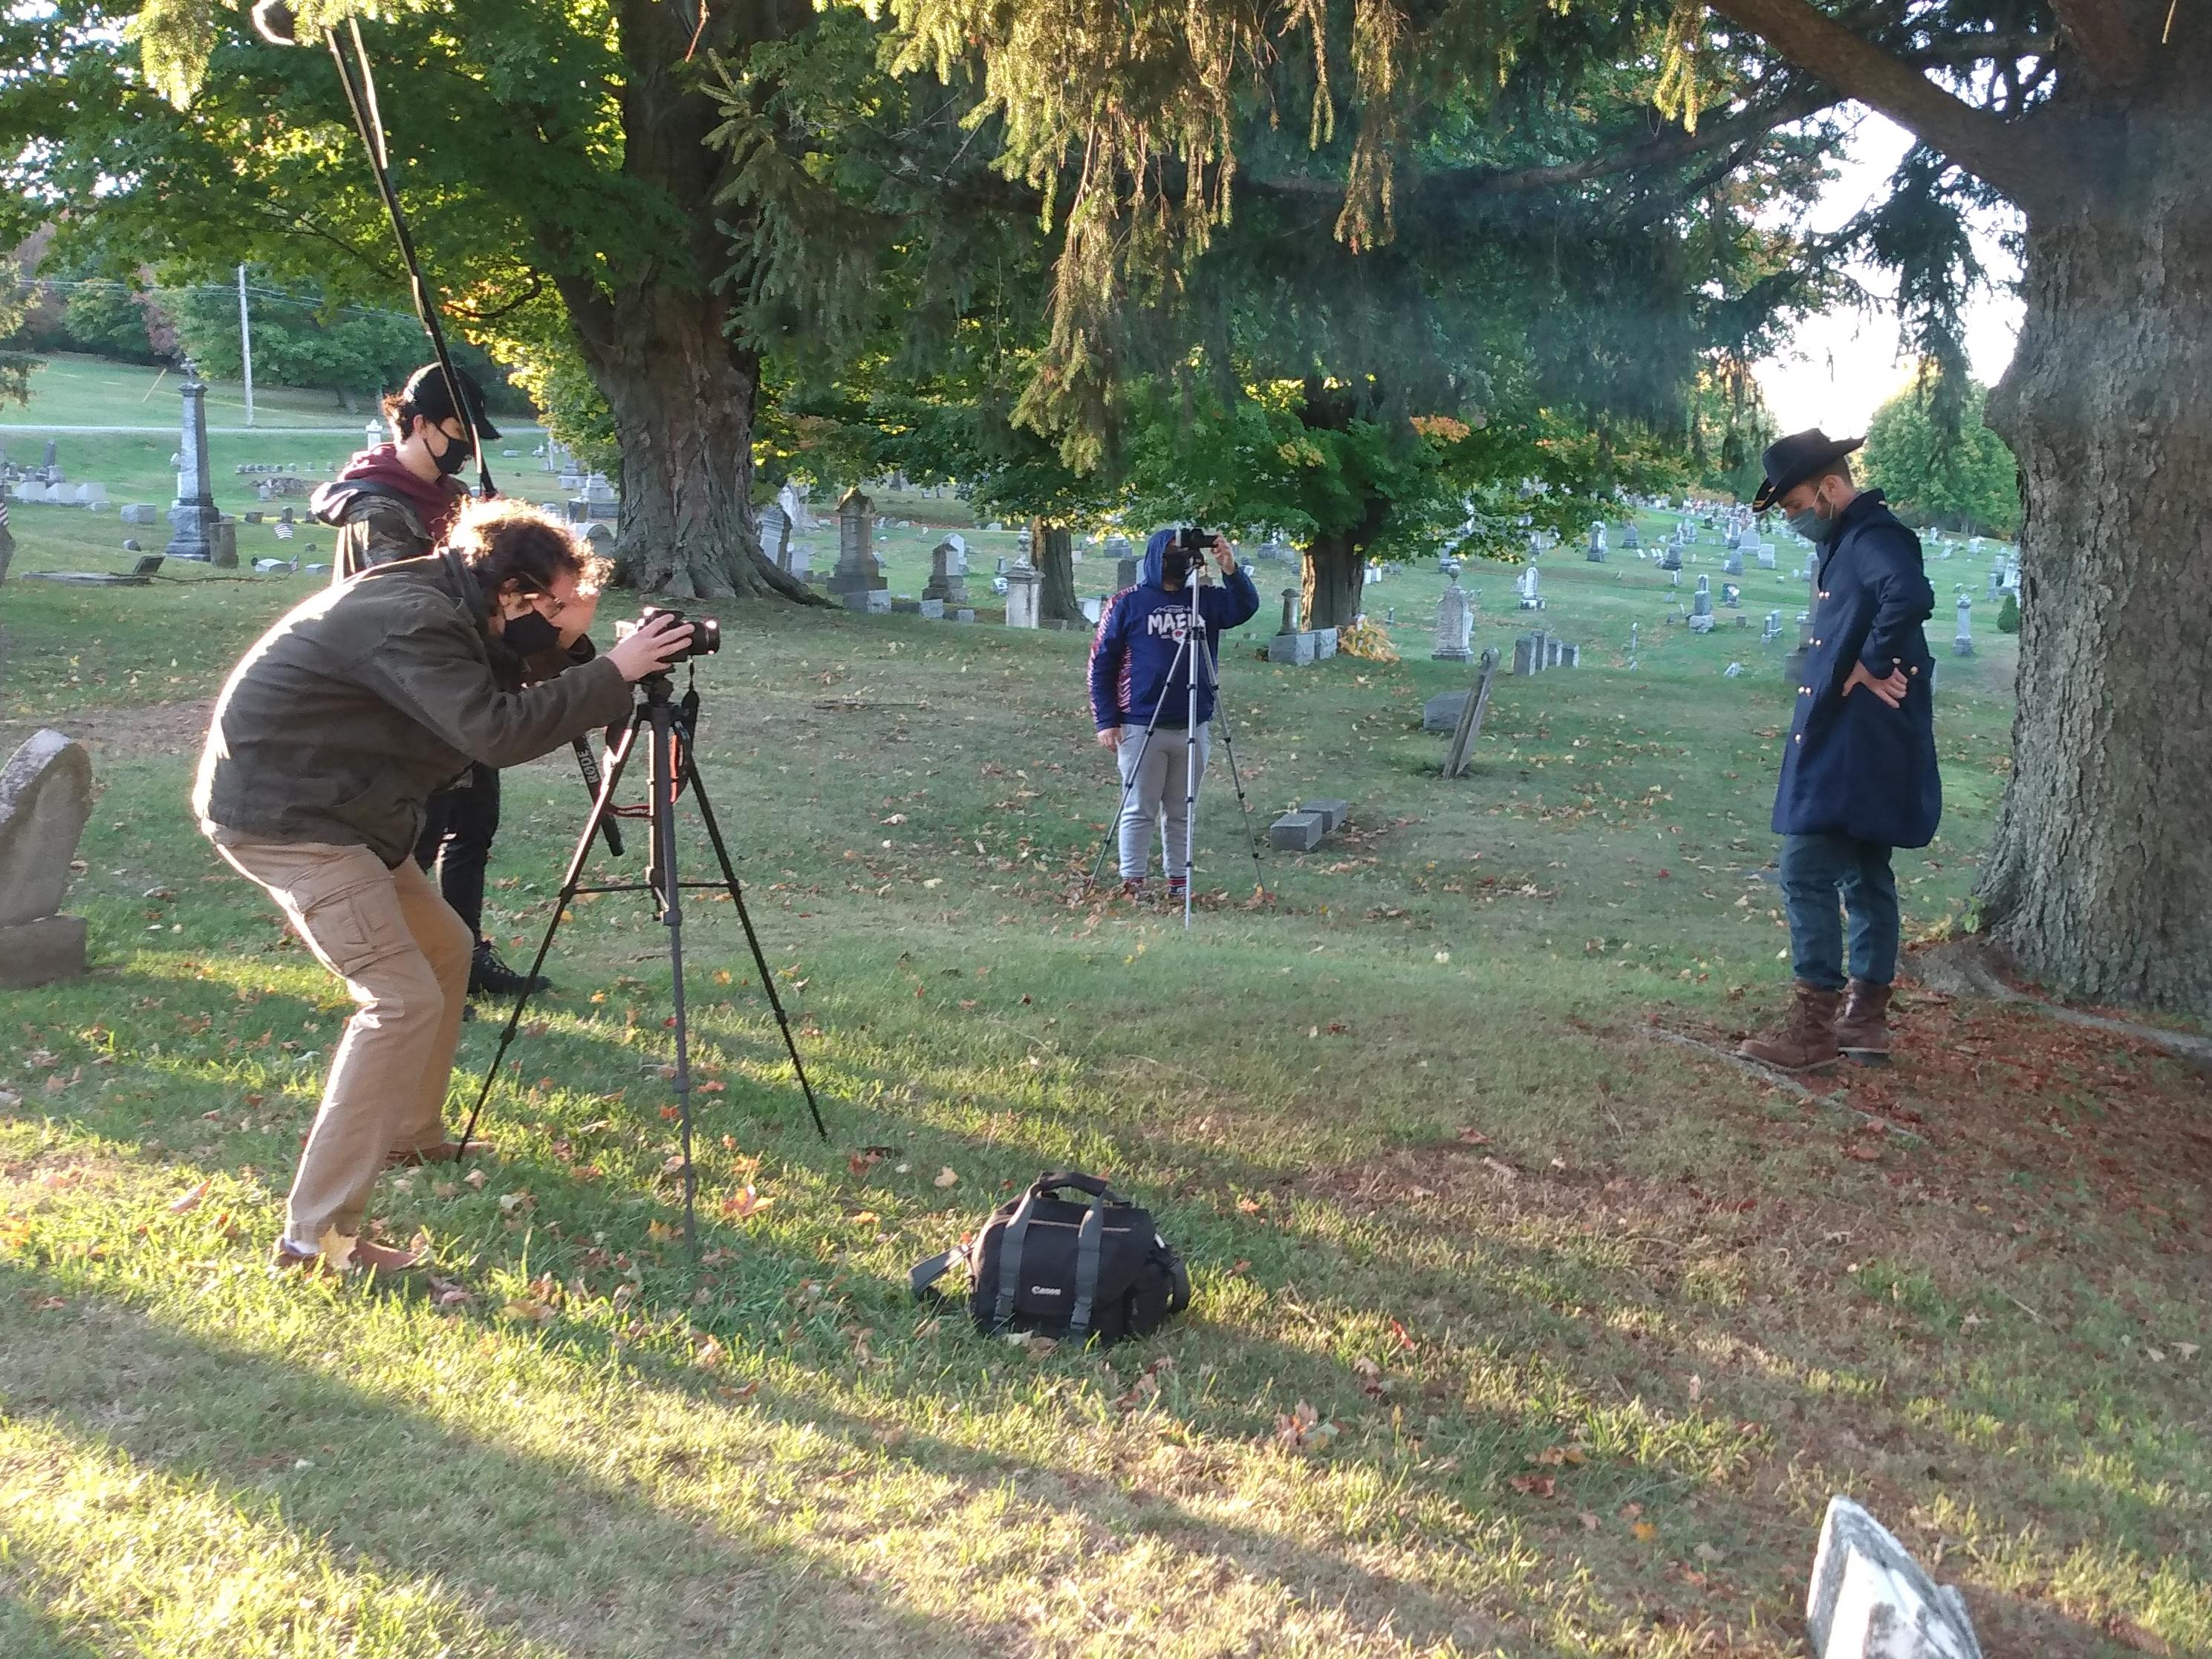 The popular Oswego Town Rural Cemetery: Ghost and History Storytelling Tour appeared virtually this year as a film, thanks to a partnership between SUNY Oswego faculty members Jonel Langenfeld-Rial and Joshua Adams, and their talented students.